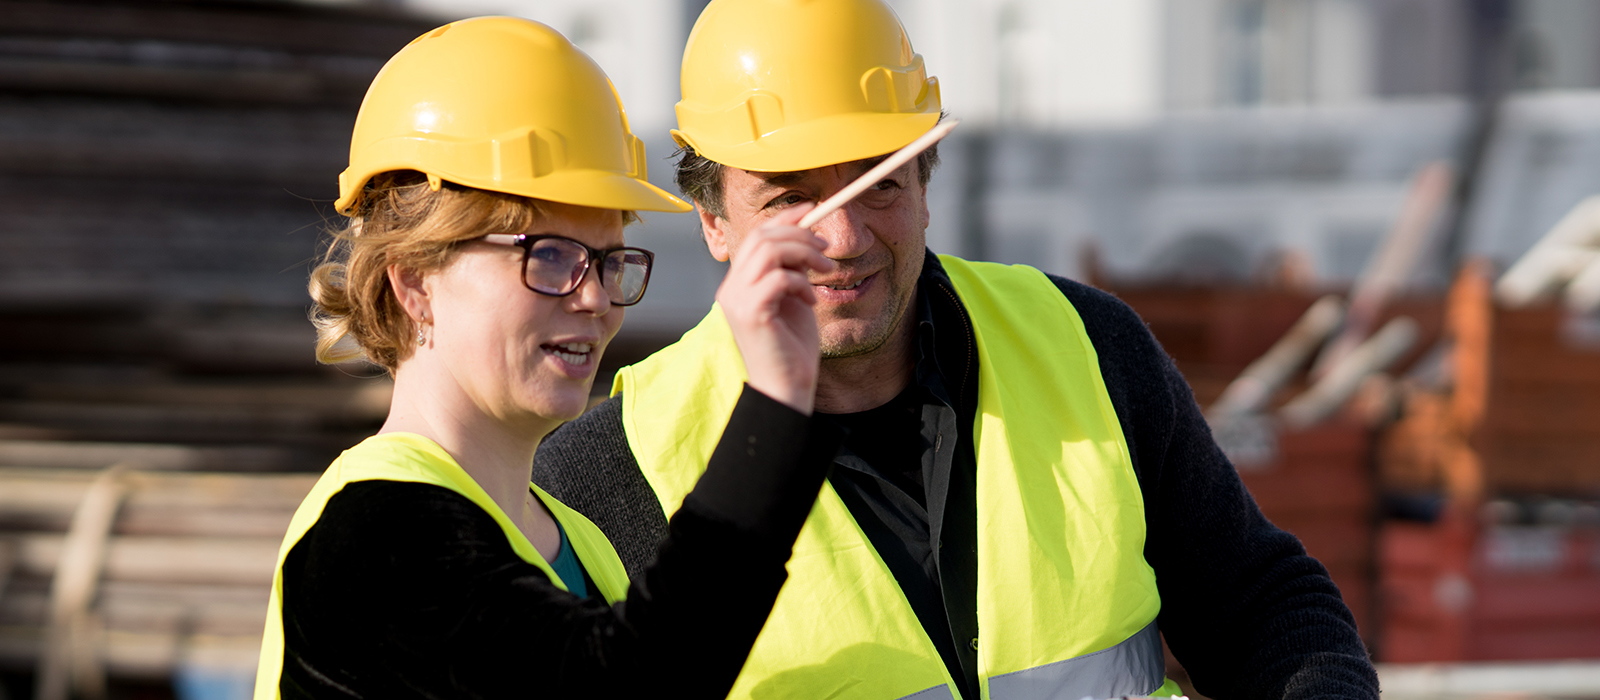 Two persons with high-visibility vest and yellow construction worker helmet are talking